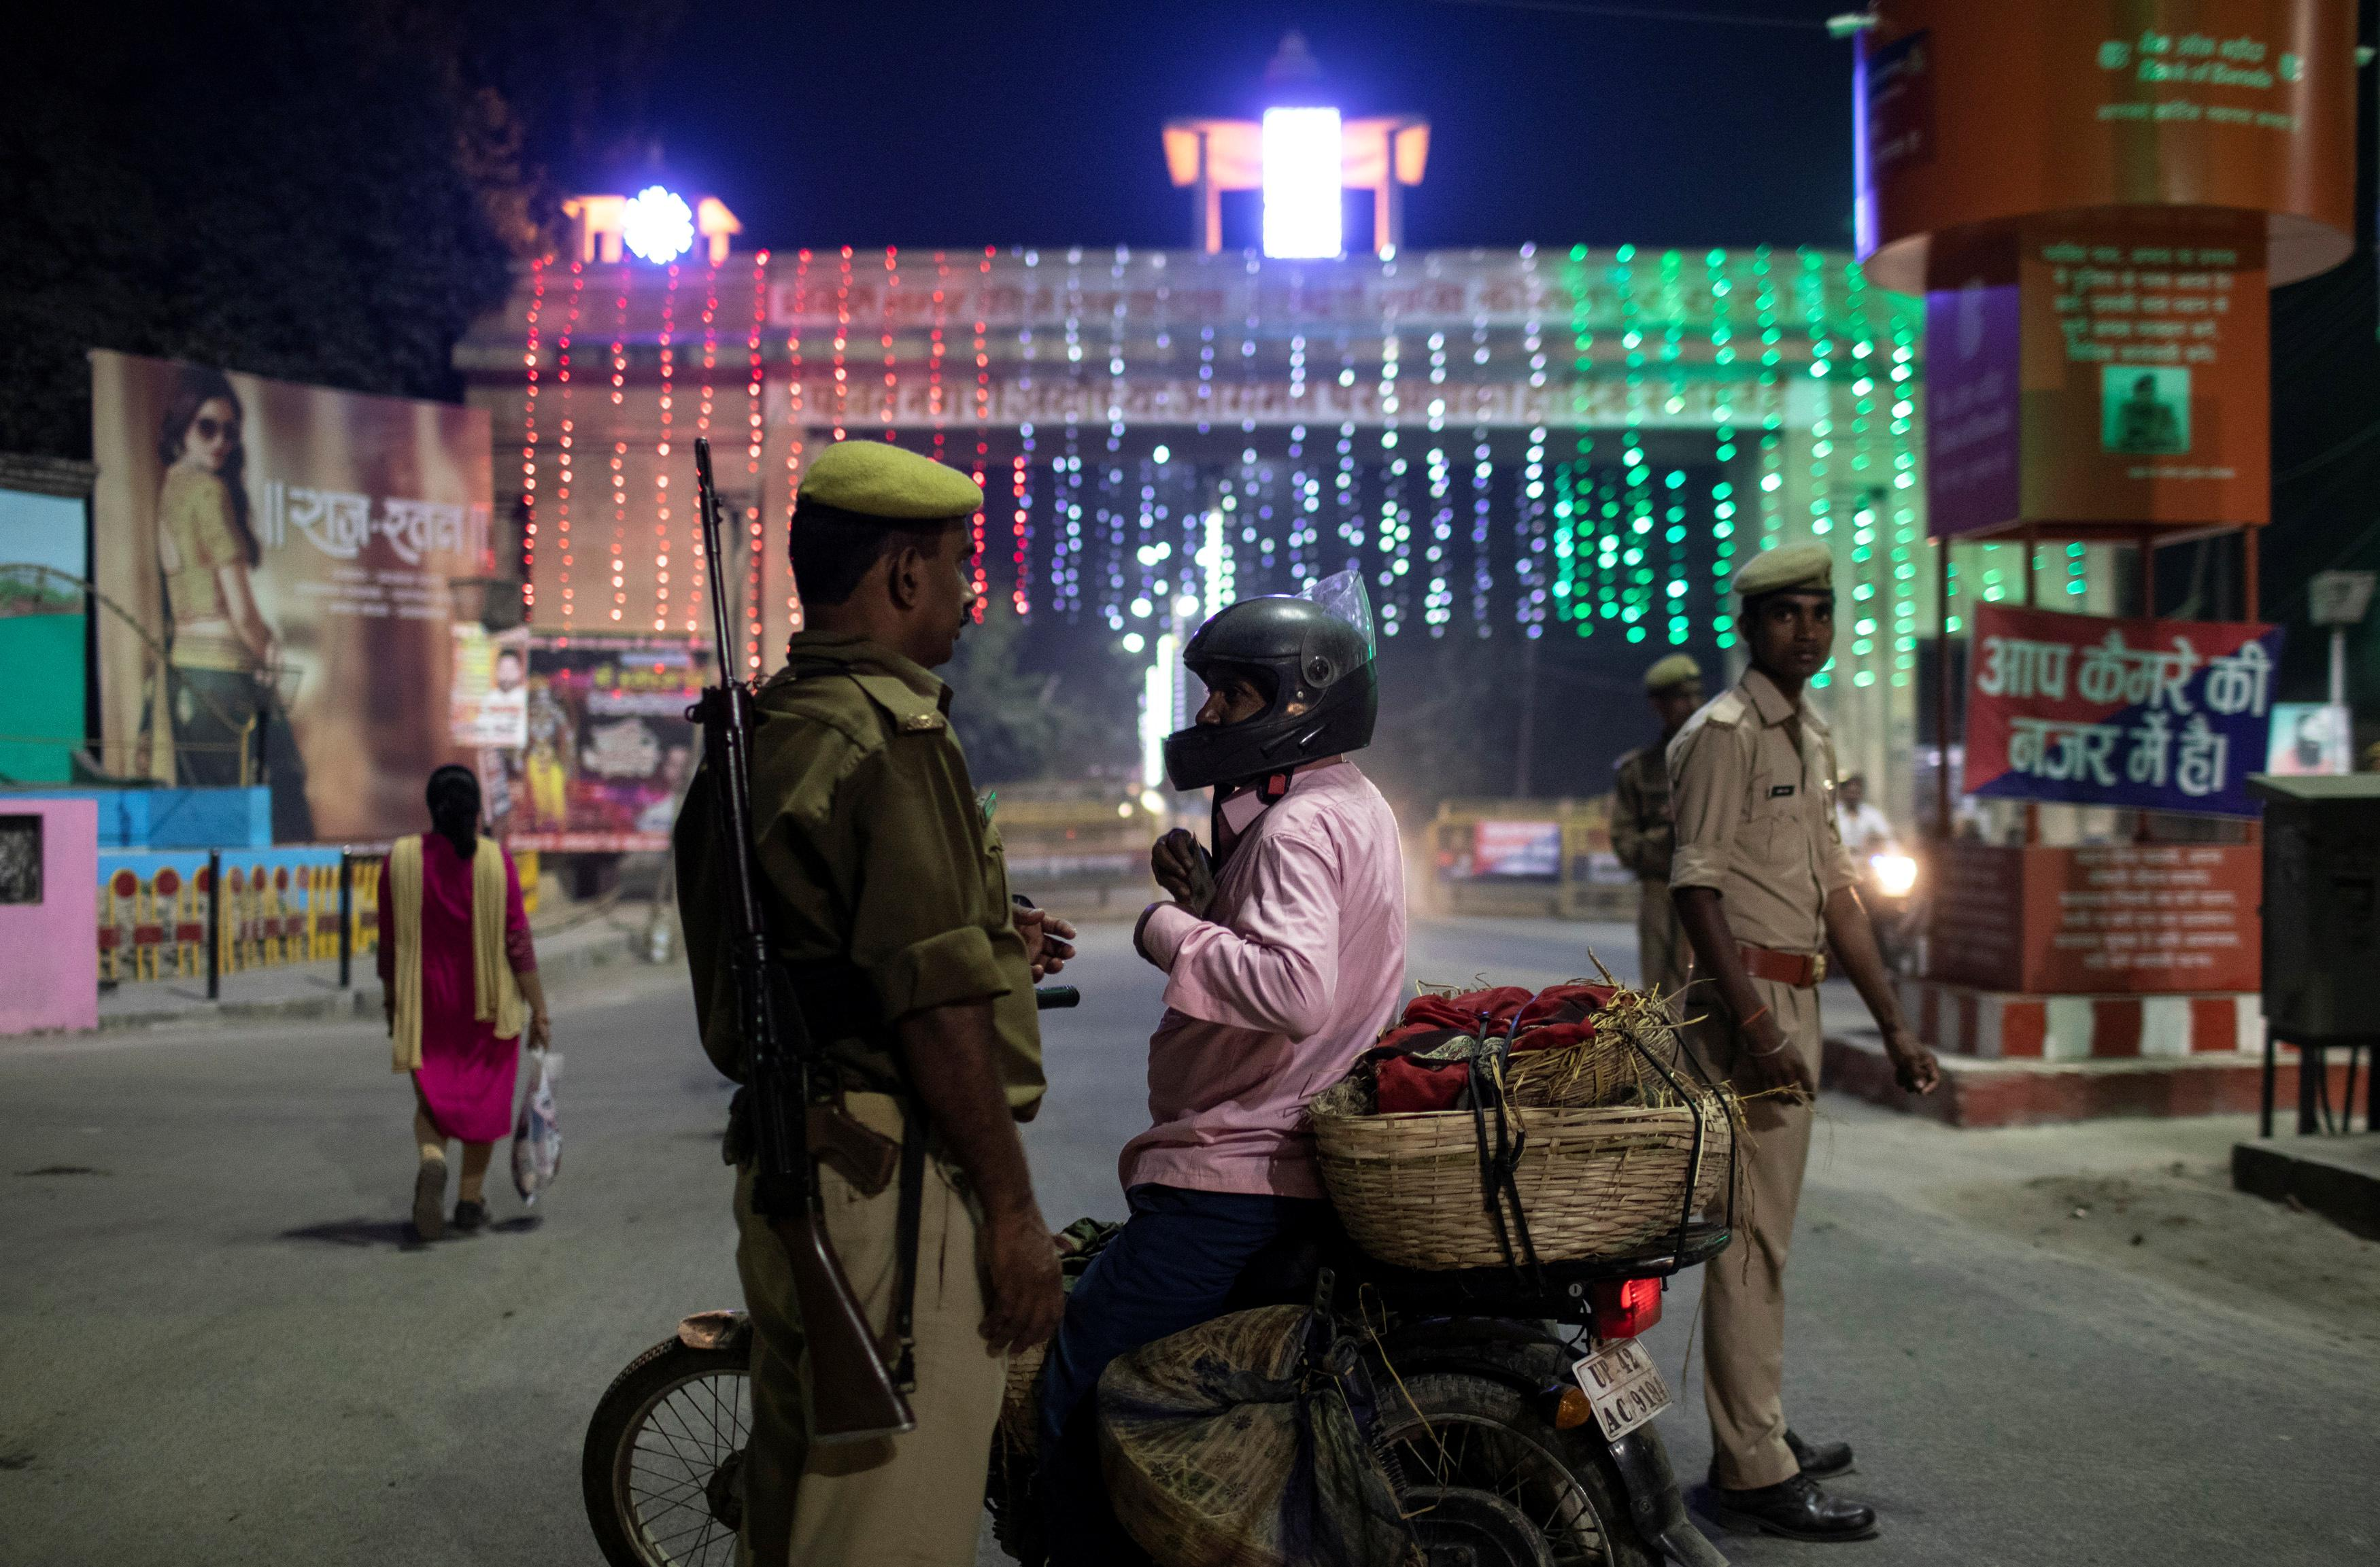 UPDATE 3-India detains users over inflammatory online posts after religious site ruling